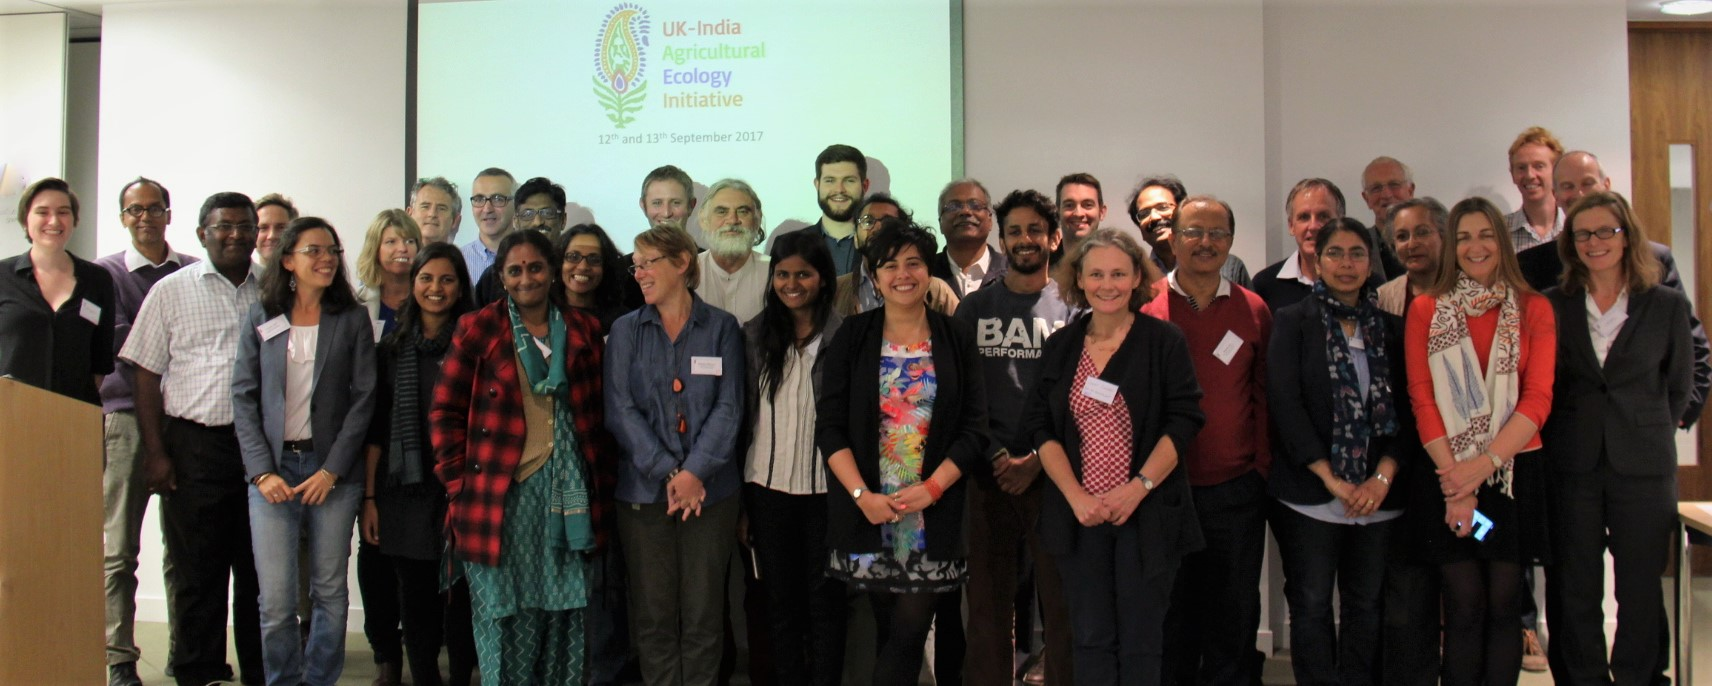 UK India Agricultural Ecology Initiative